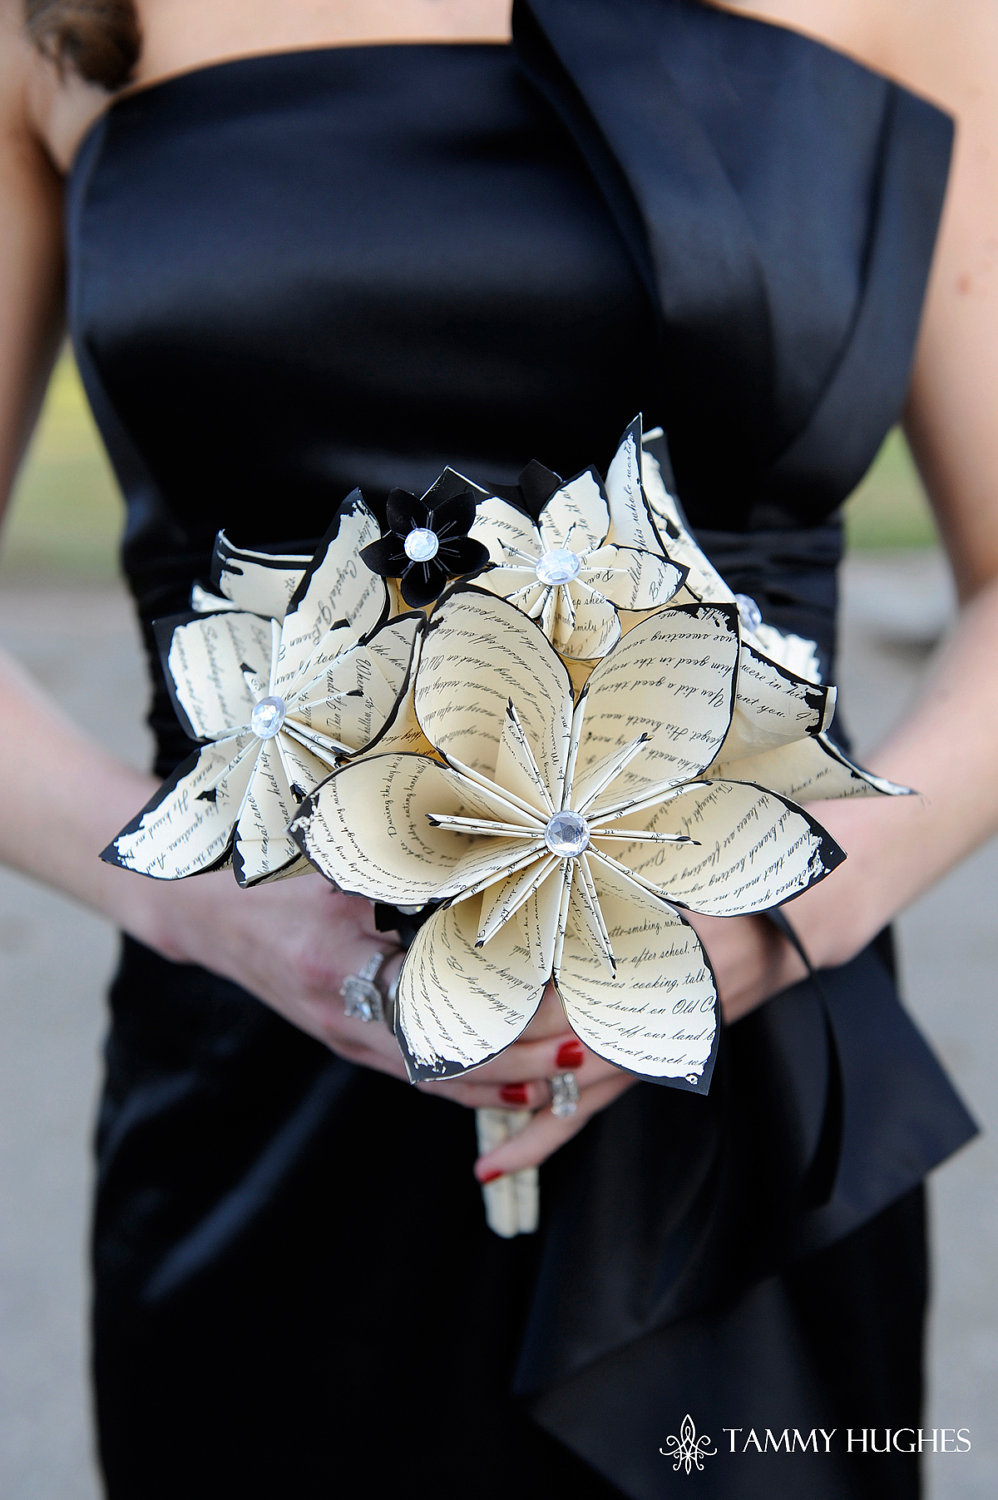 Music themed wedding accessories ceremony reception decor paper flower centerpiece.